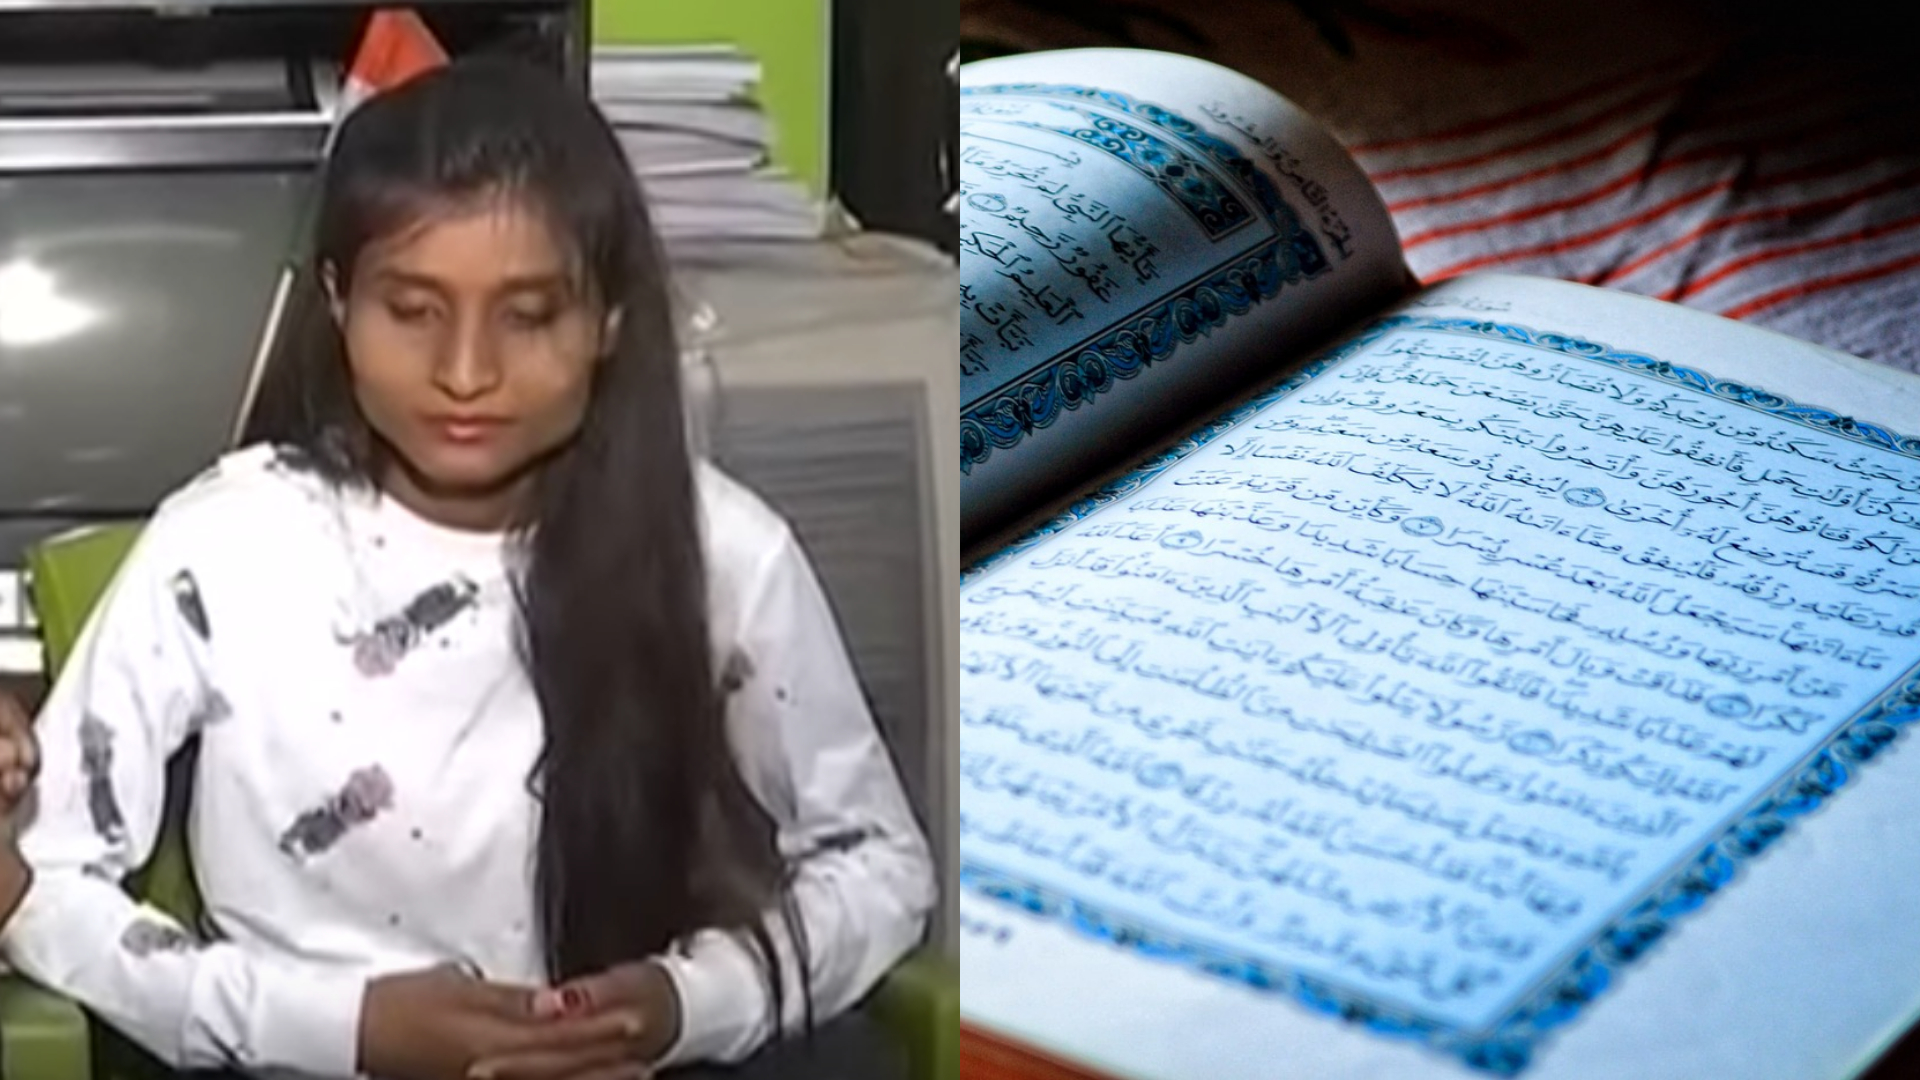 Indian Woman Ordered to Distribute Copies of the Quran as Punishment for Anti-Islamic Facebook Post